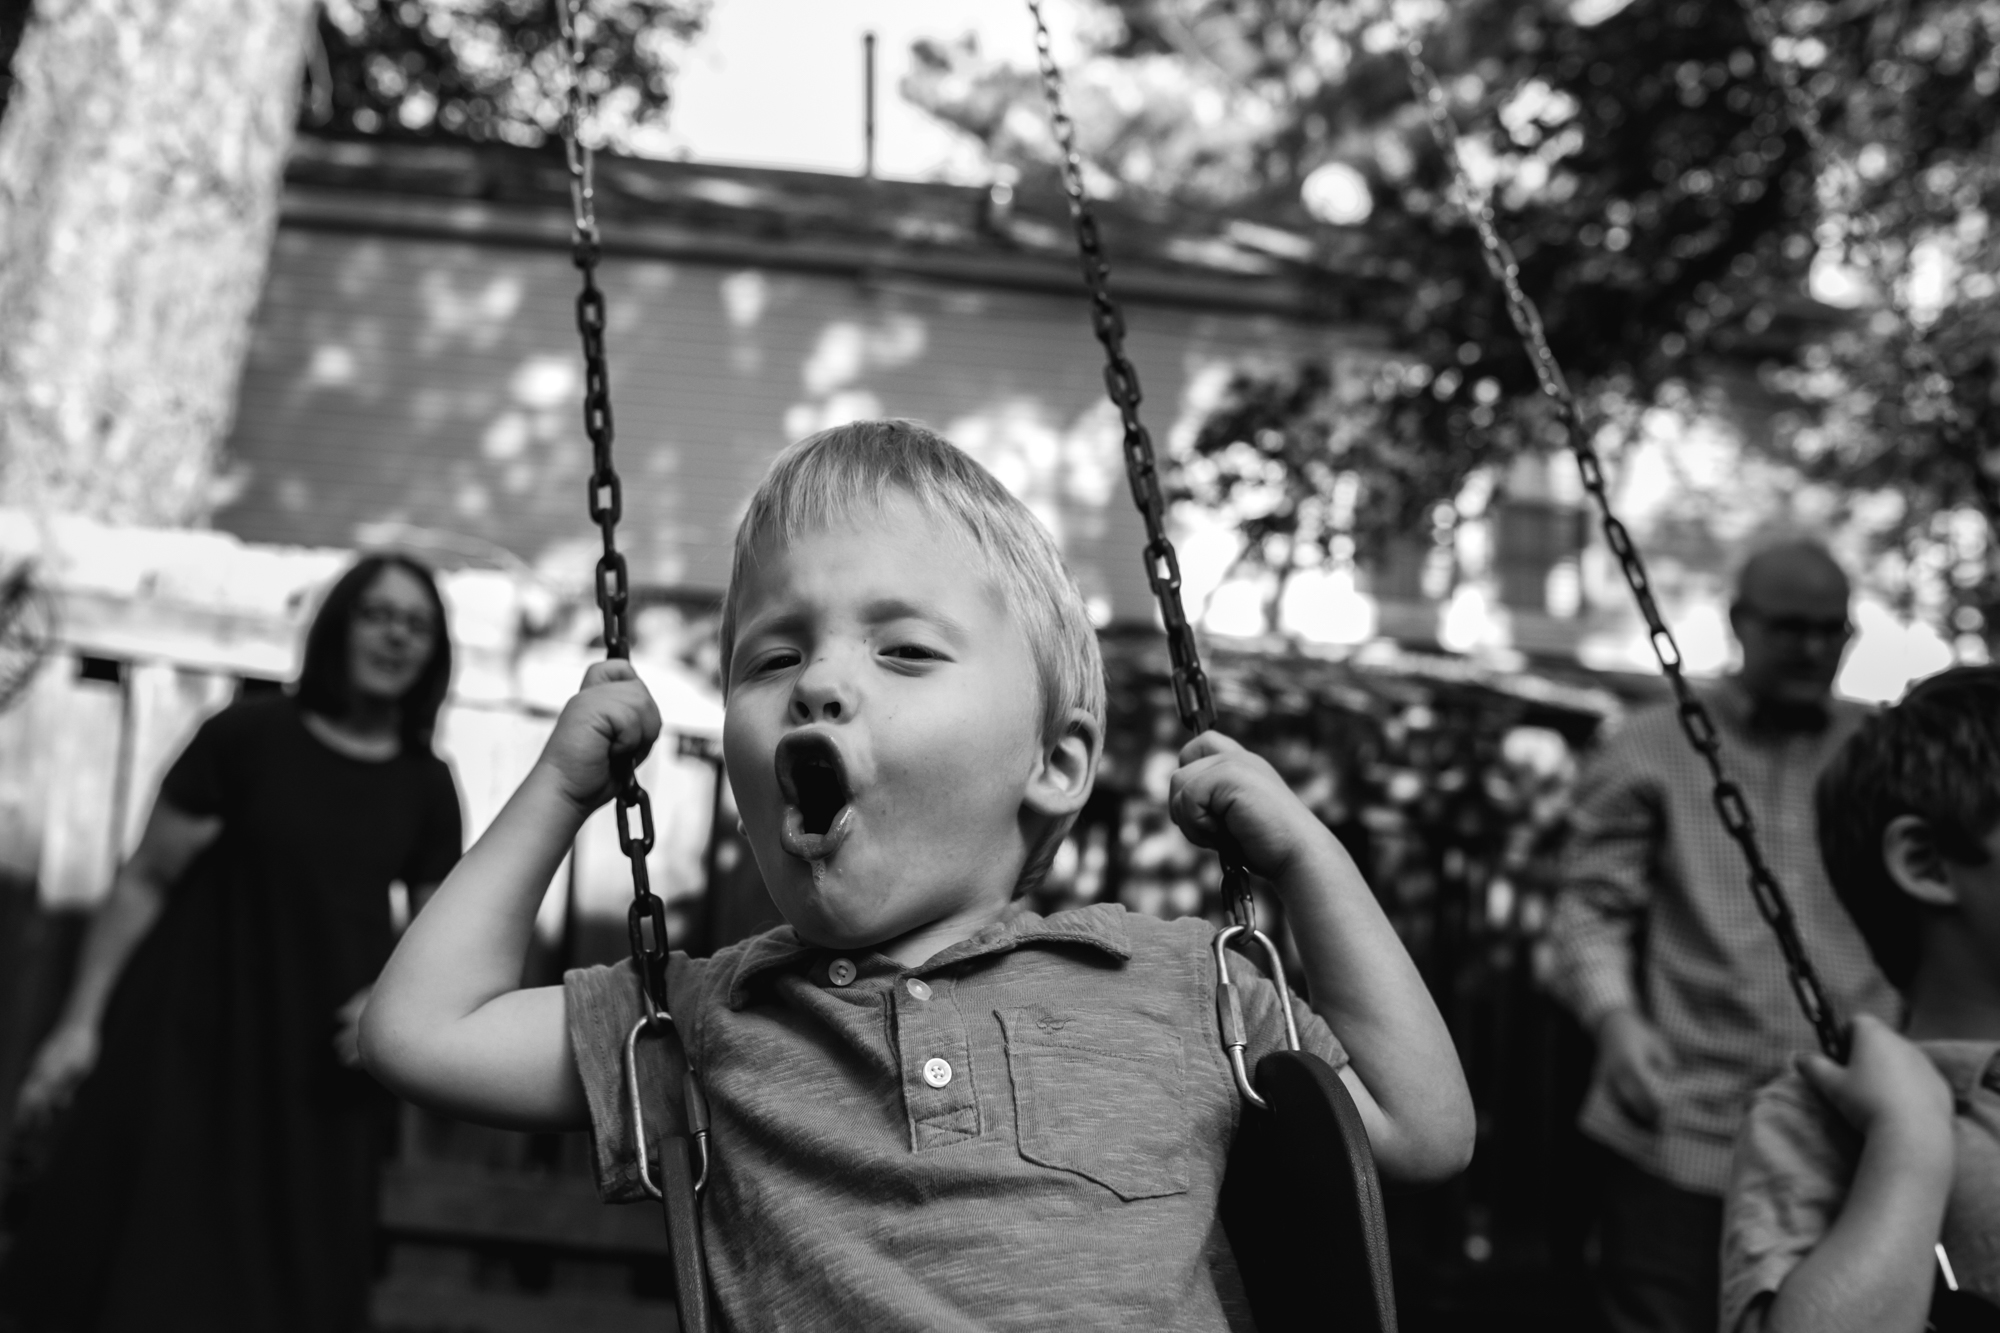 Boy on a swing singing